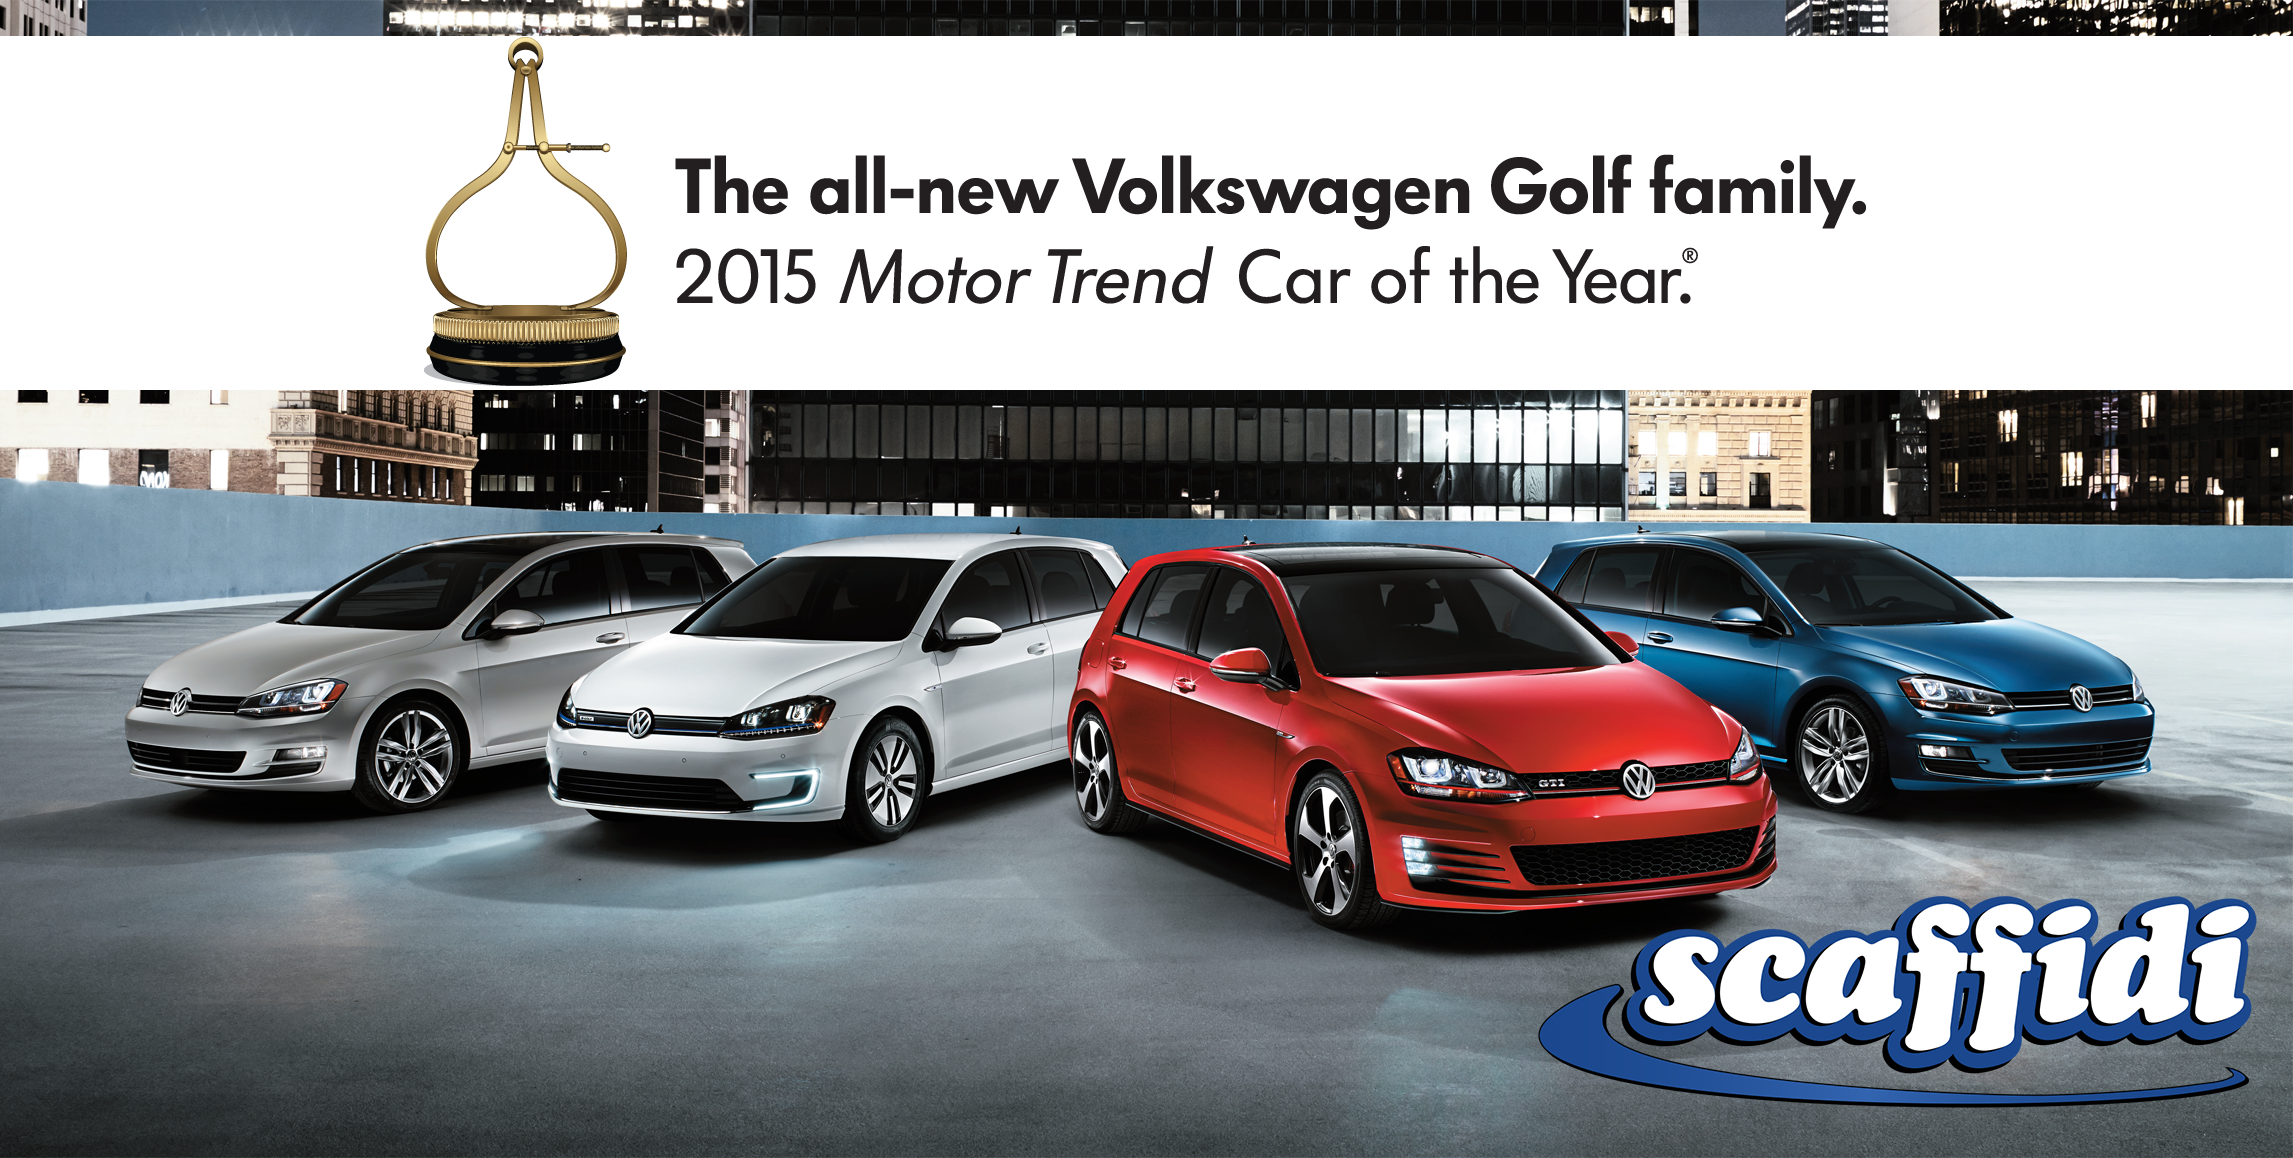 The 2015 Motor Trend Car of the Year  The allnew VW Golf Family